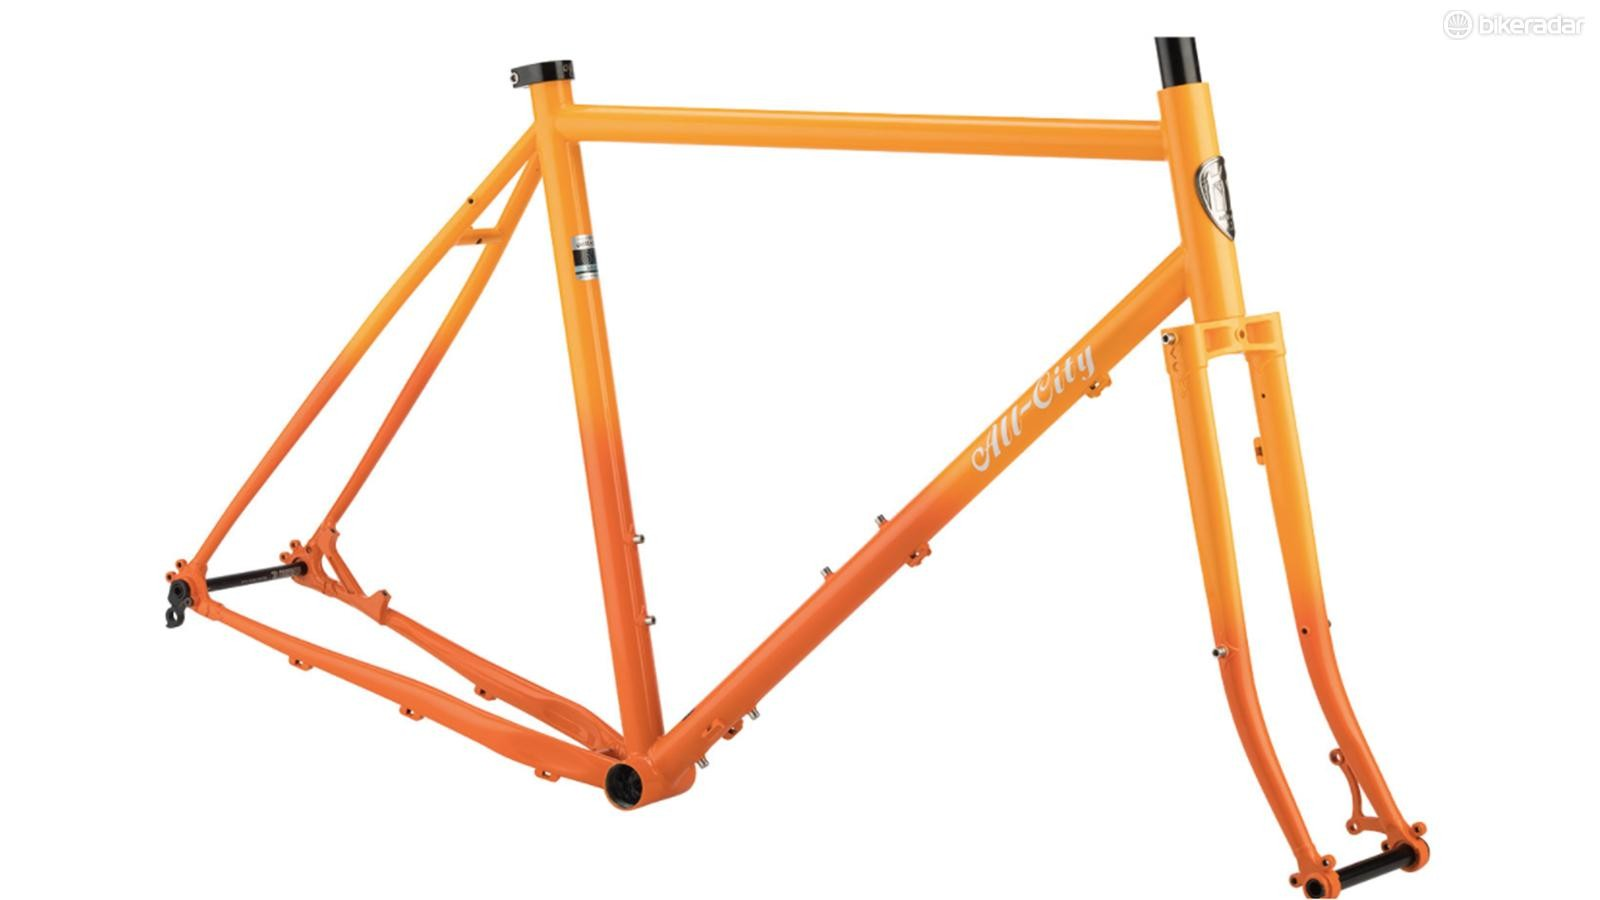 The Gorilla Monsoon can fit 650b or 700c wheels and tires